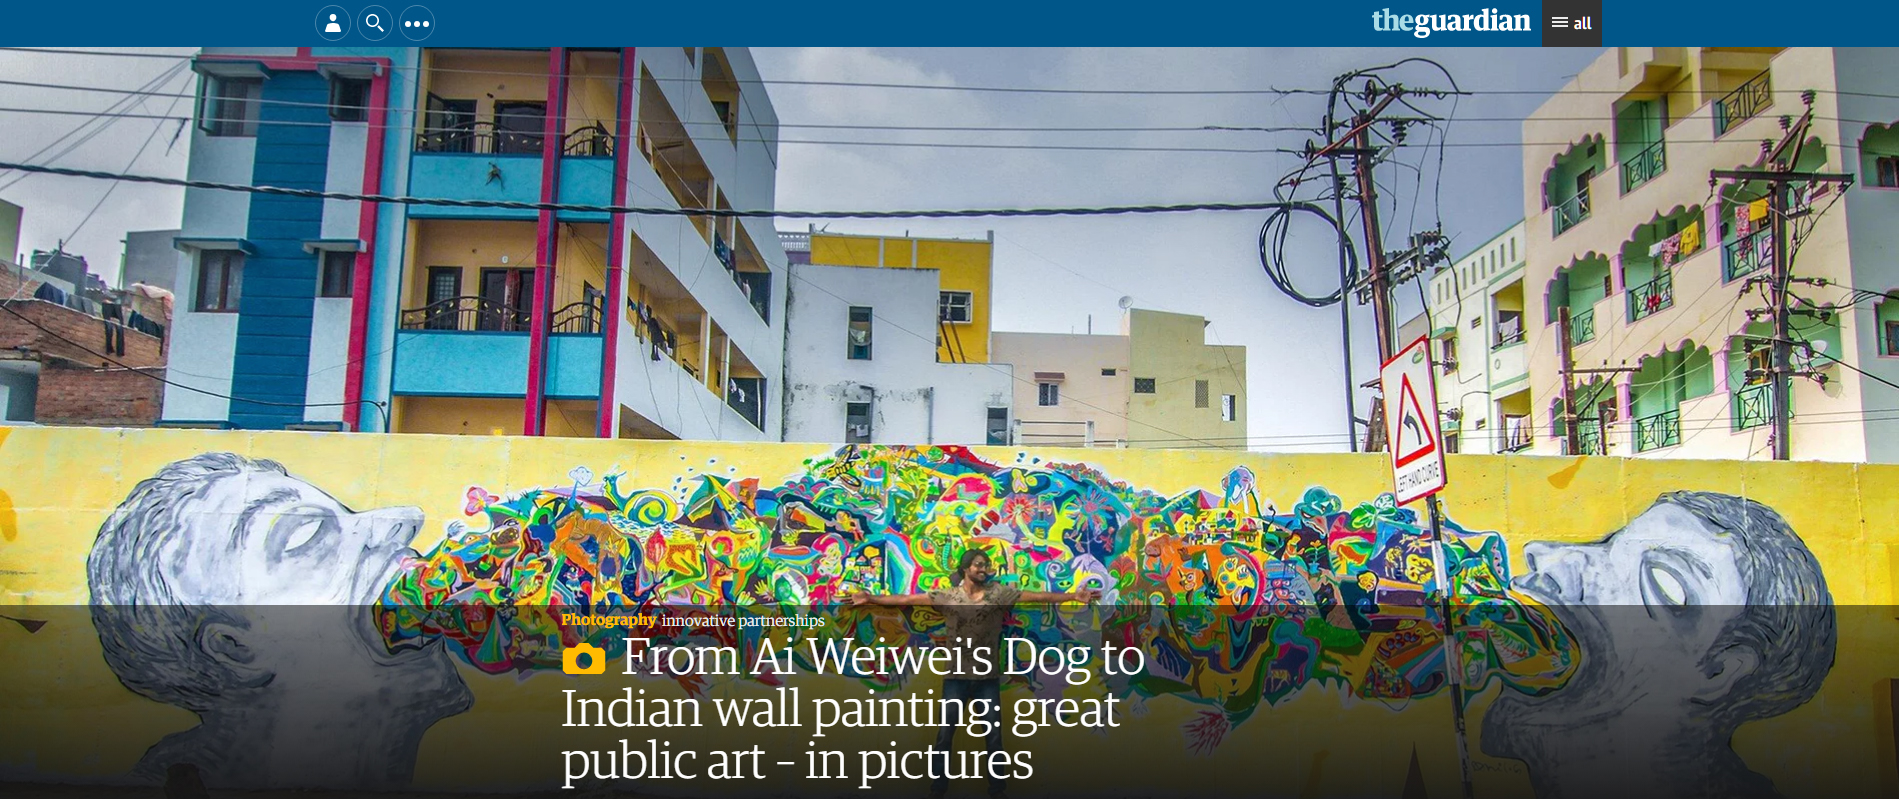 Guardian article image of great public art